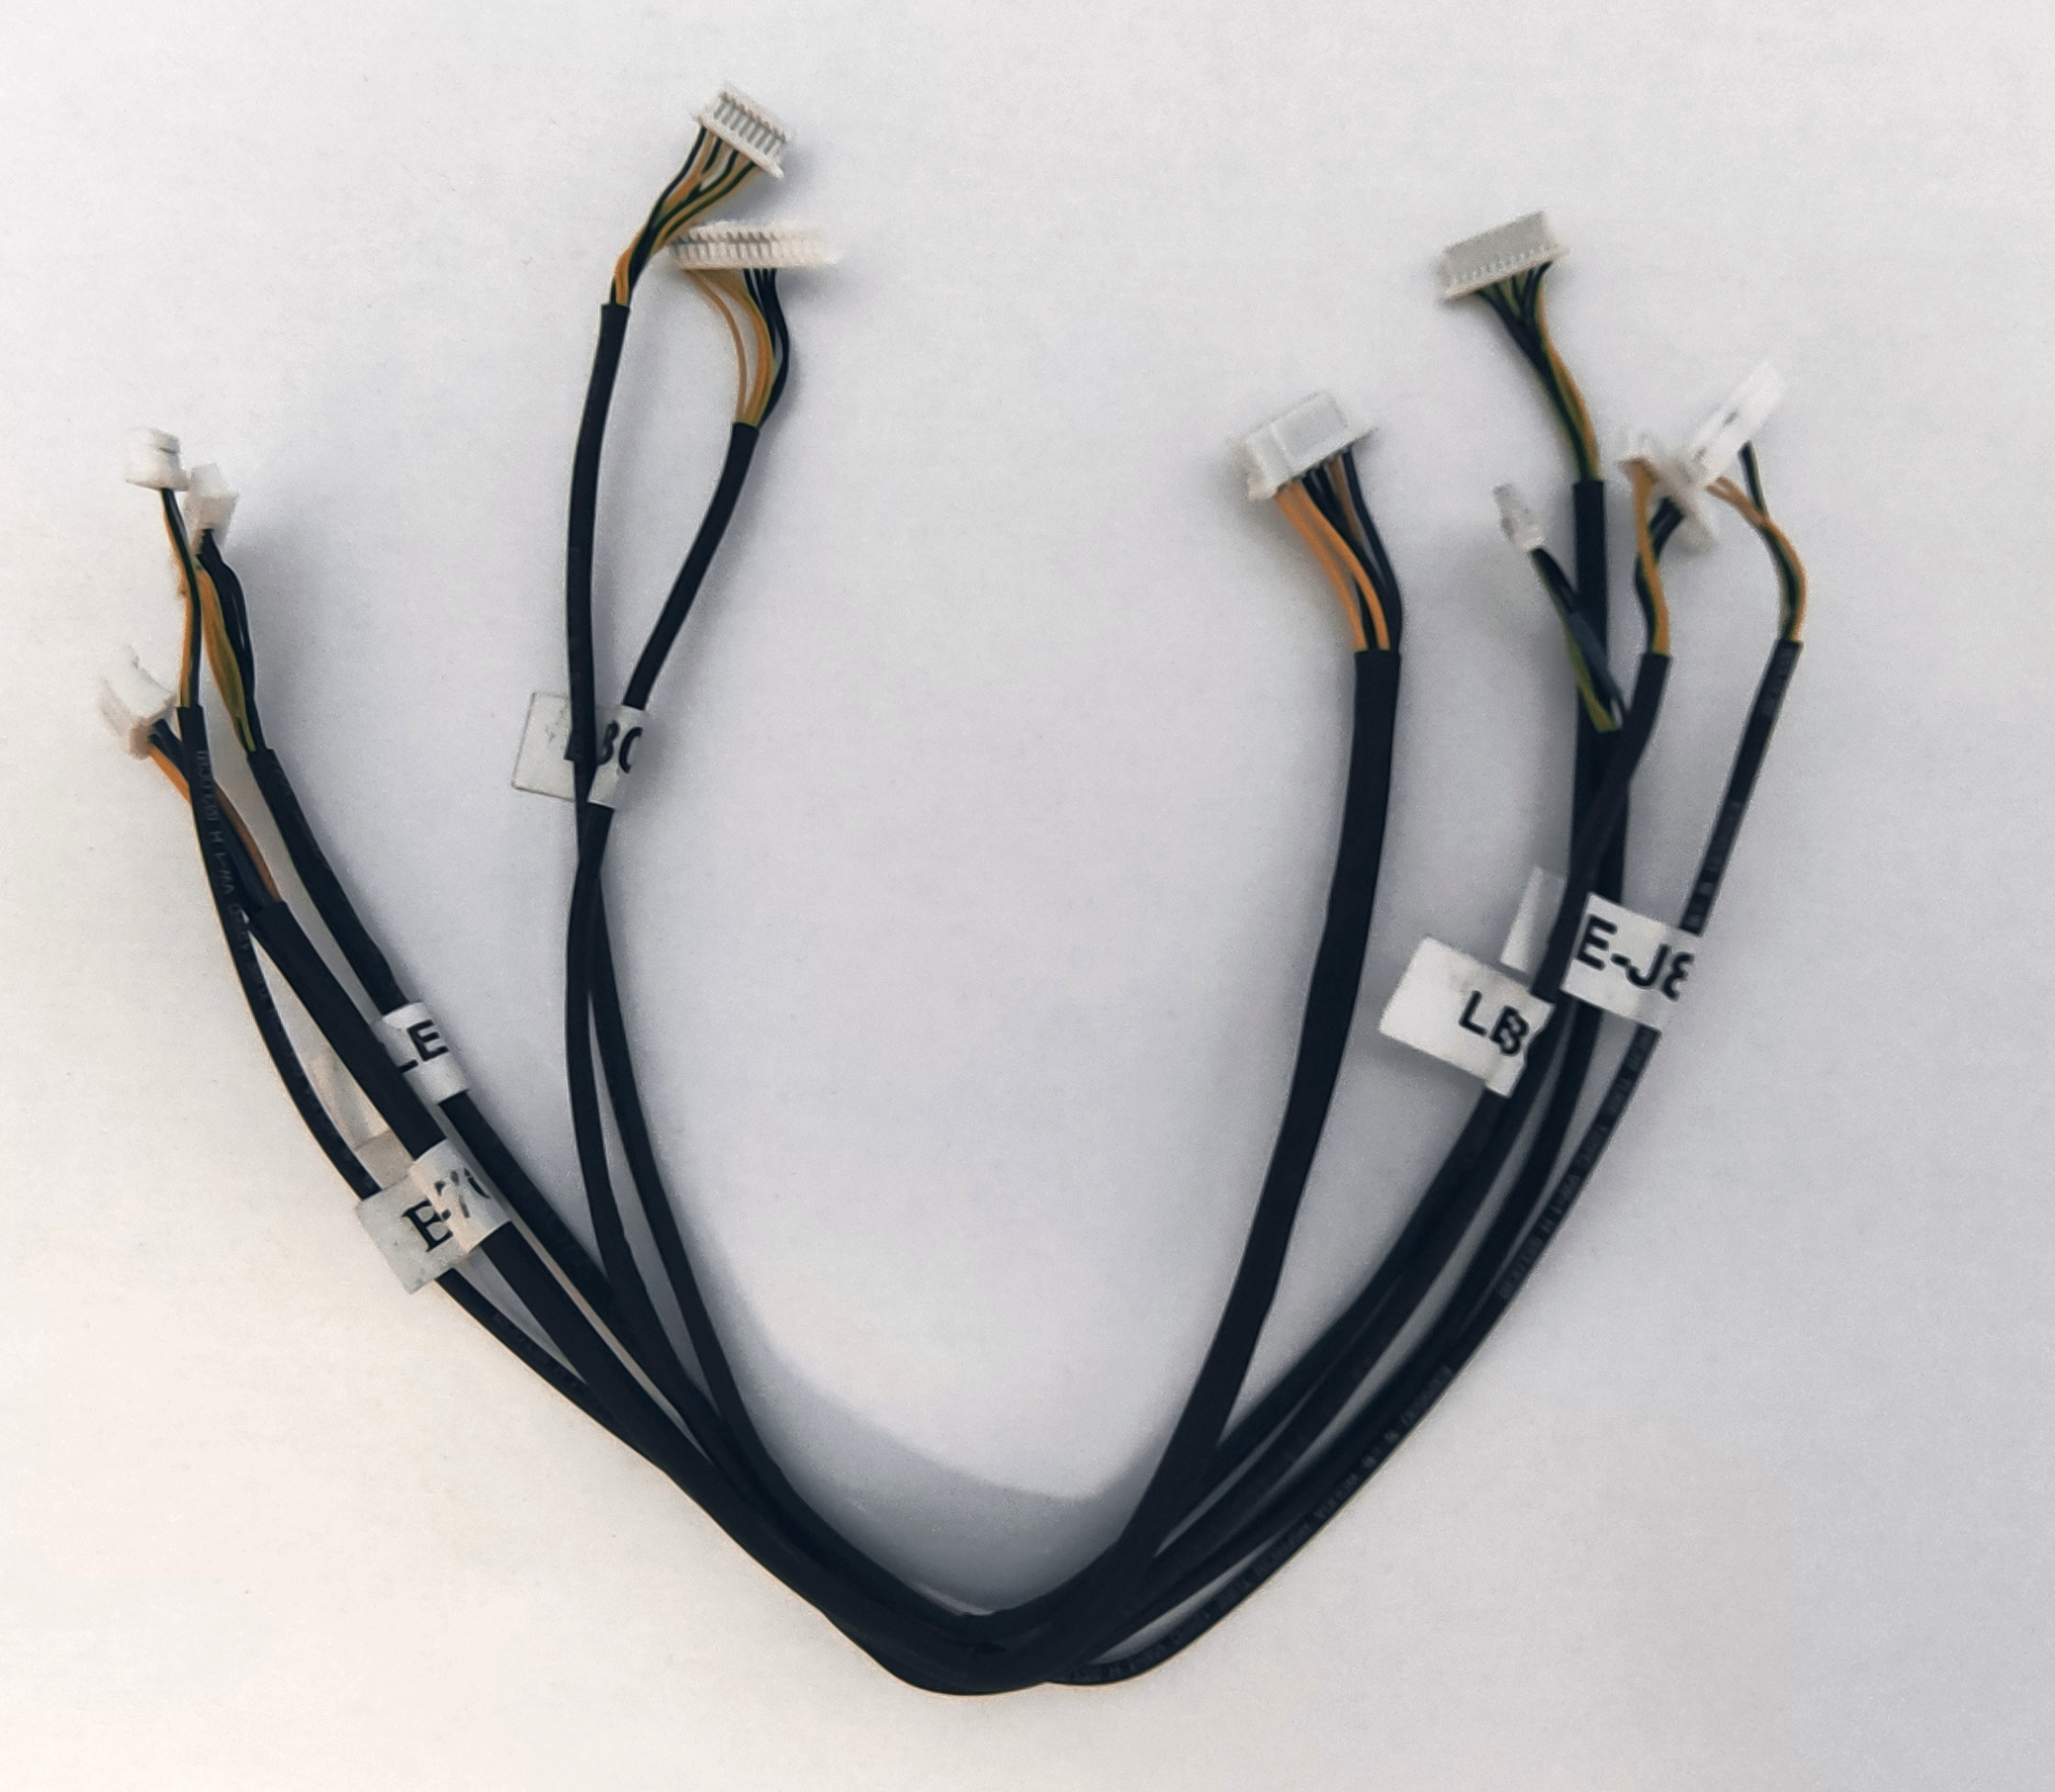 BT-cable-70530